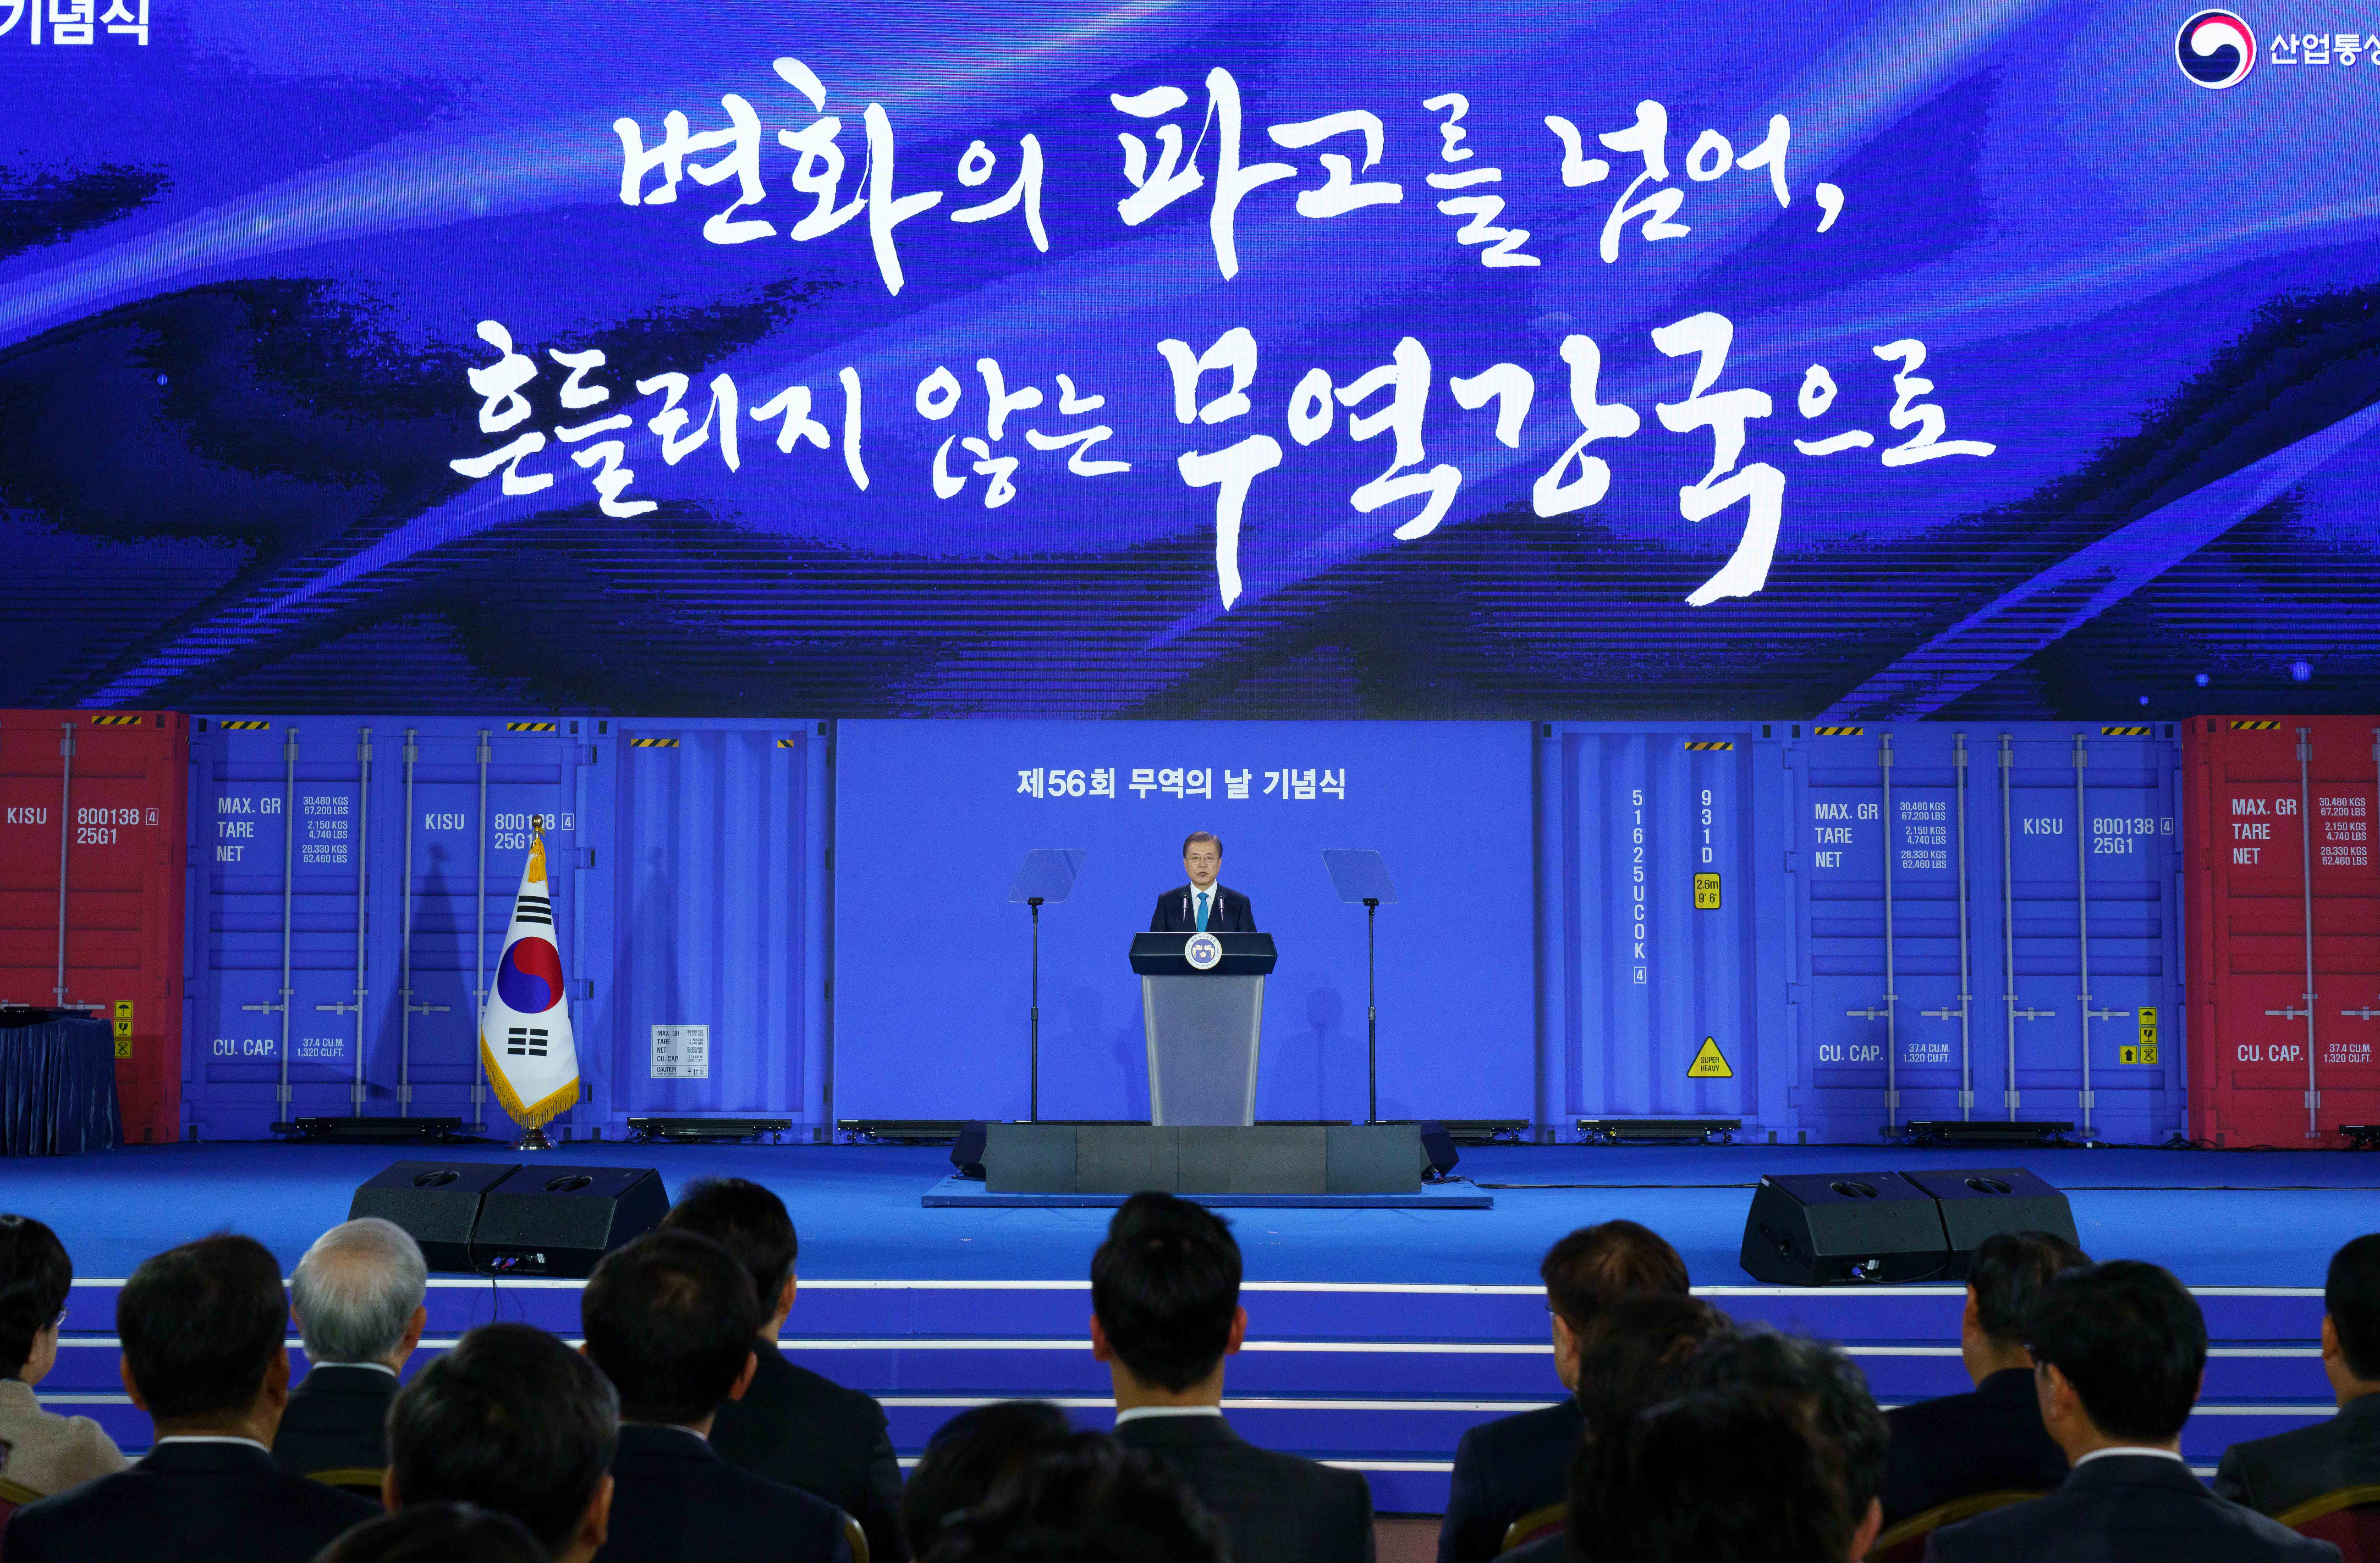 President Moon Jae-in on Dec. 5 gives a speech at the 2019 Trade Day ceremony held at Seoul's Convention and Exhibition Center (COEX). Hyoja-dong Studio